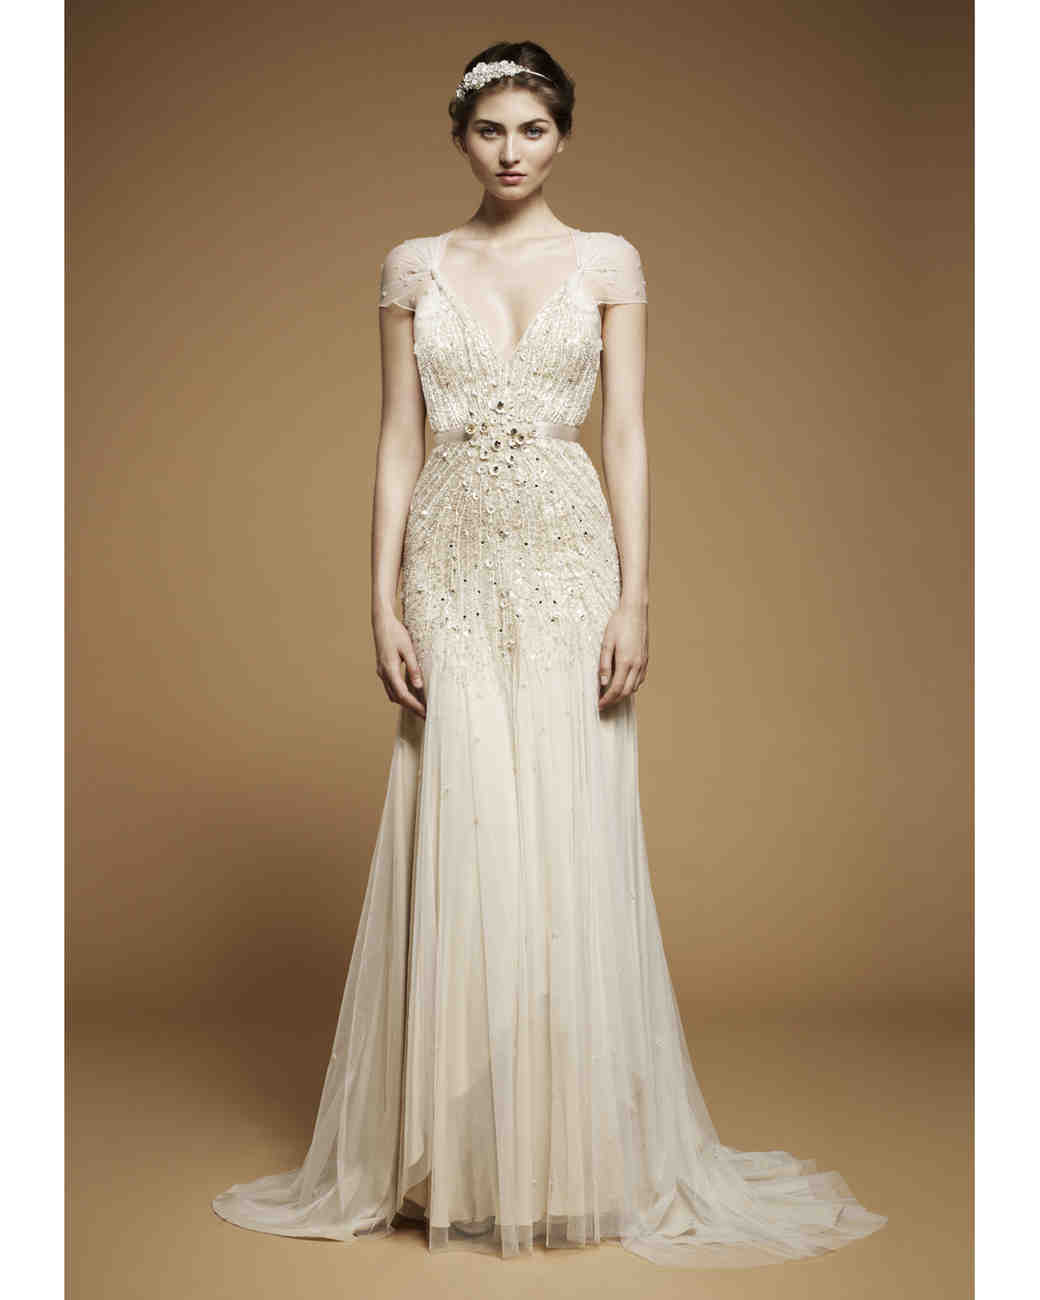 Hayley Paige Wedding Gowns 015 - Hayley Paige Wedding Gowns